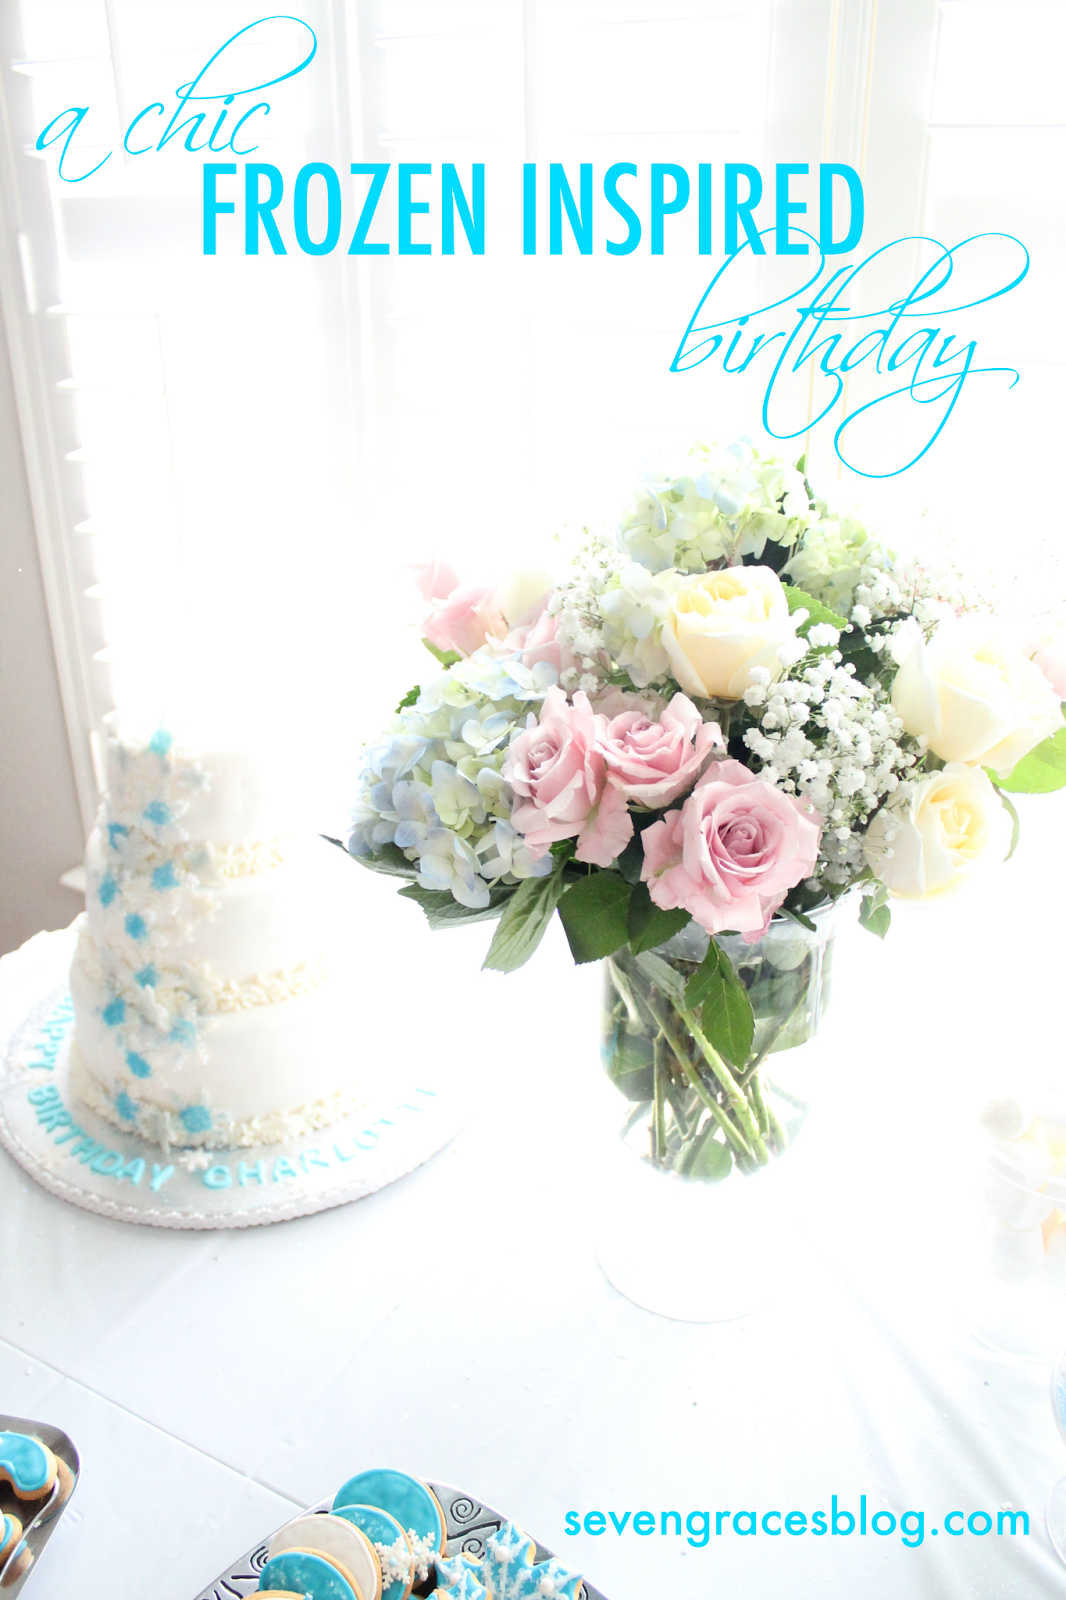 Charlottes royal 2nd birthday a chic frozen theme seven graces after seeing the ivory lane create a beautiful frozen party months ago i knew a chic frozen theme was exactly what i wanted charlottes second birthday izmirmasajfo